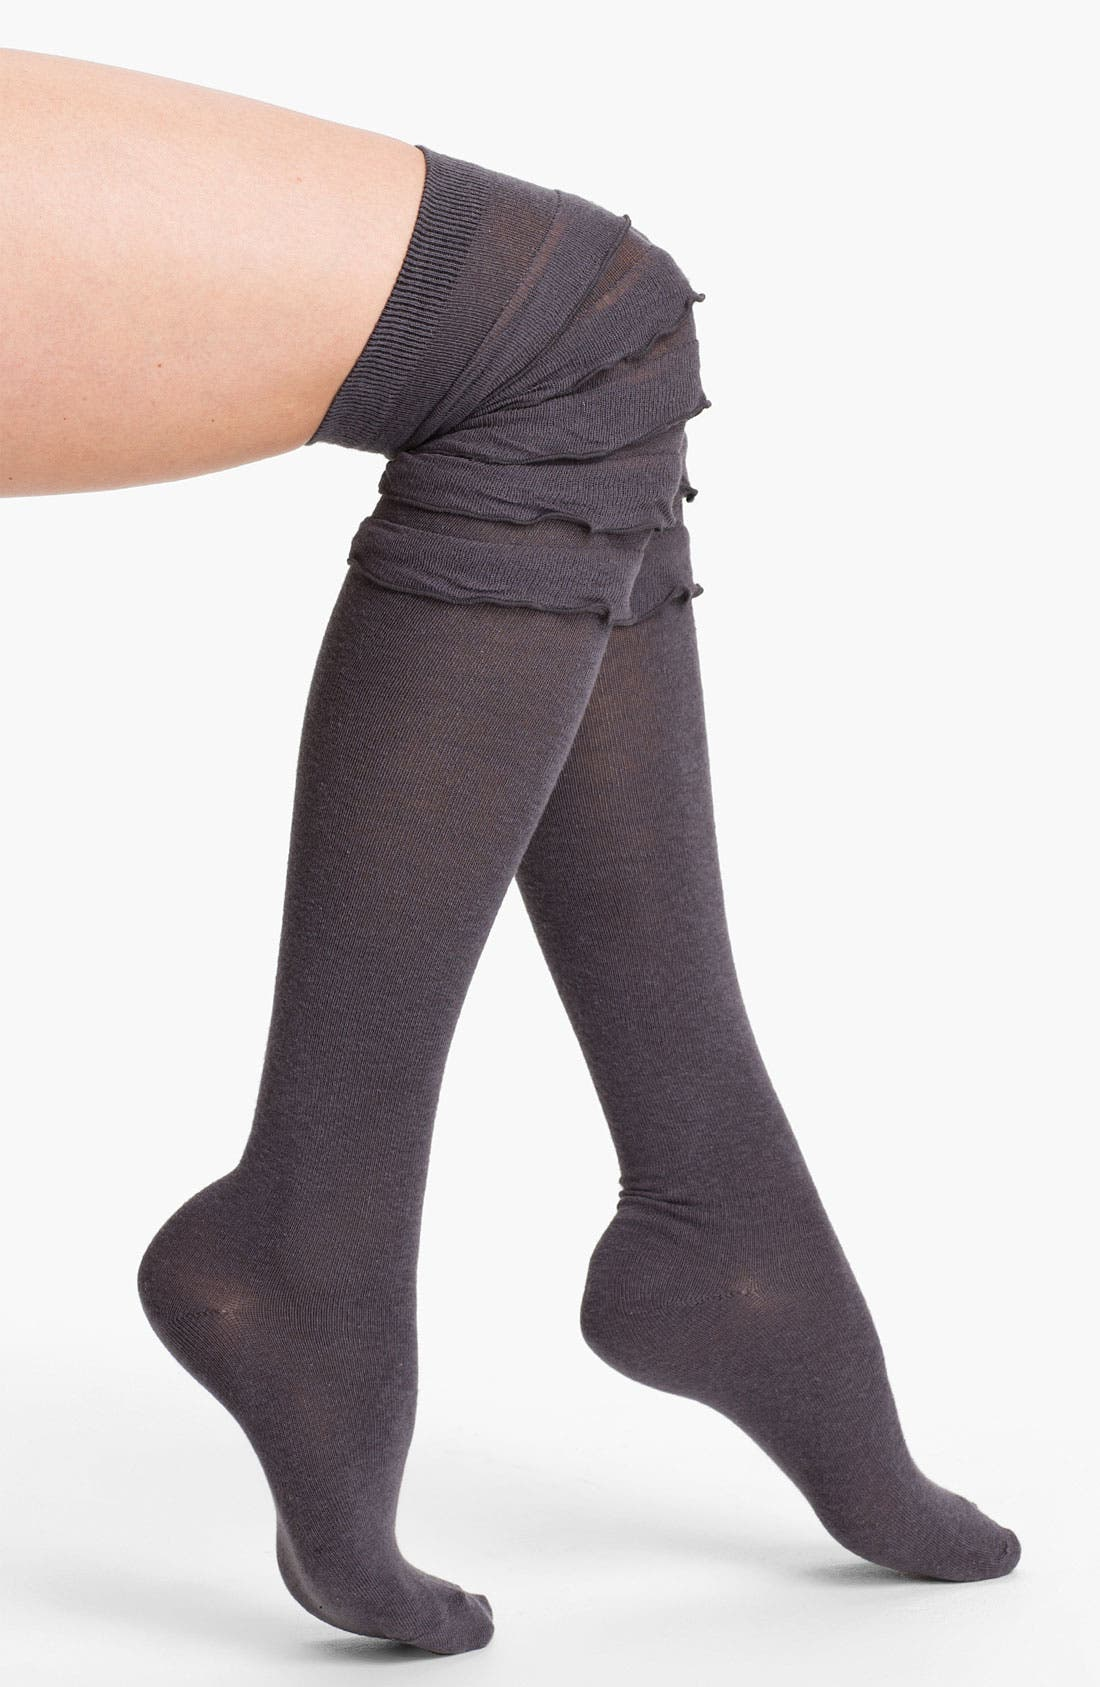 Main Image - Free People Ruffle Over-the-Knee Socks